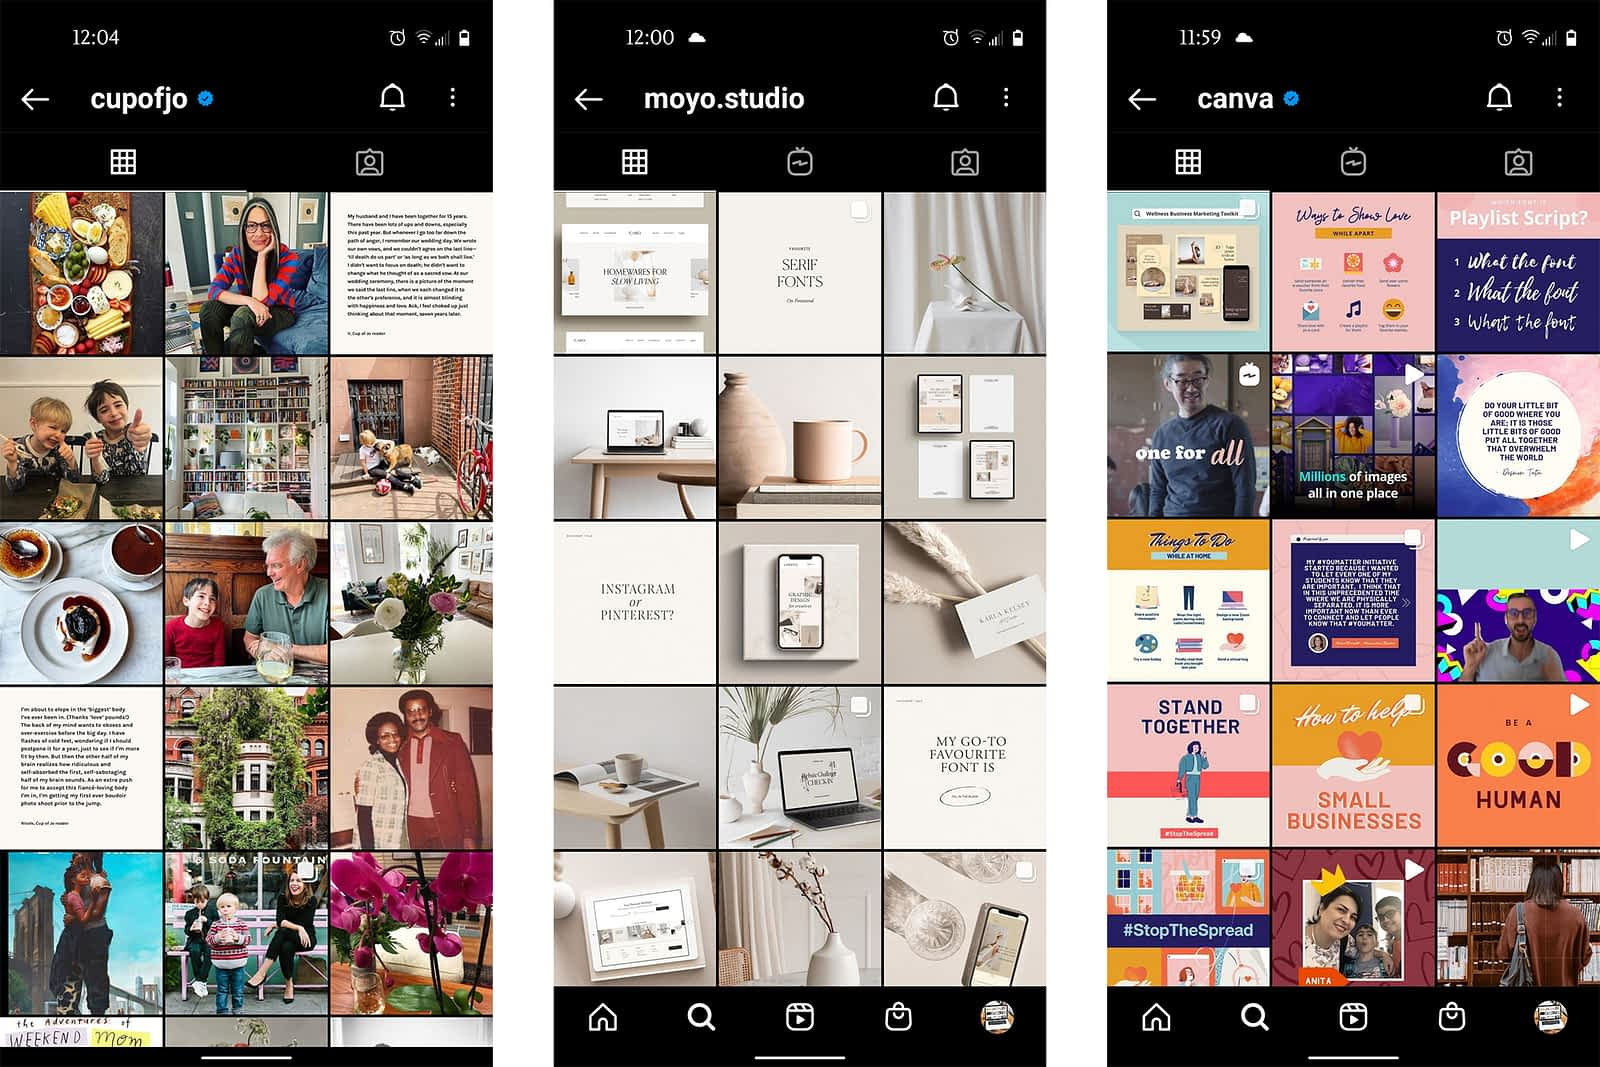 Instagram feed examples